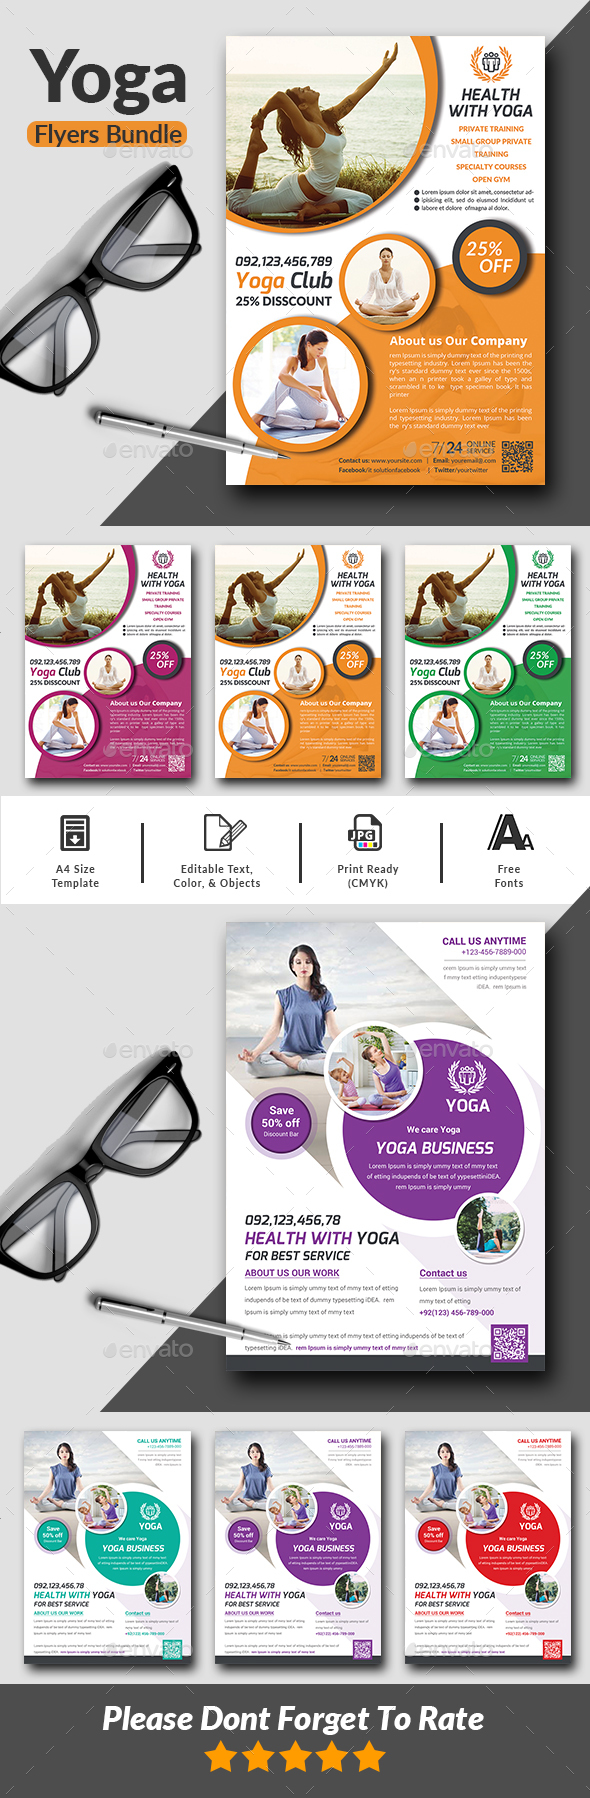 Yoga Flyers Bundle template - Corporate Flyers